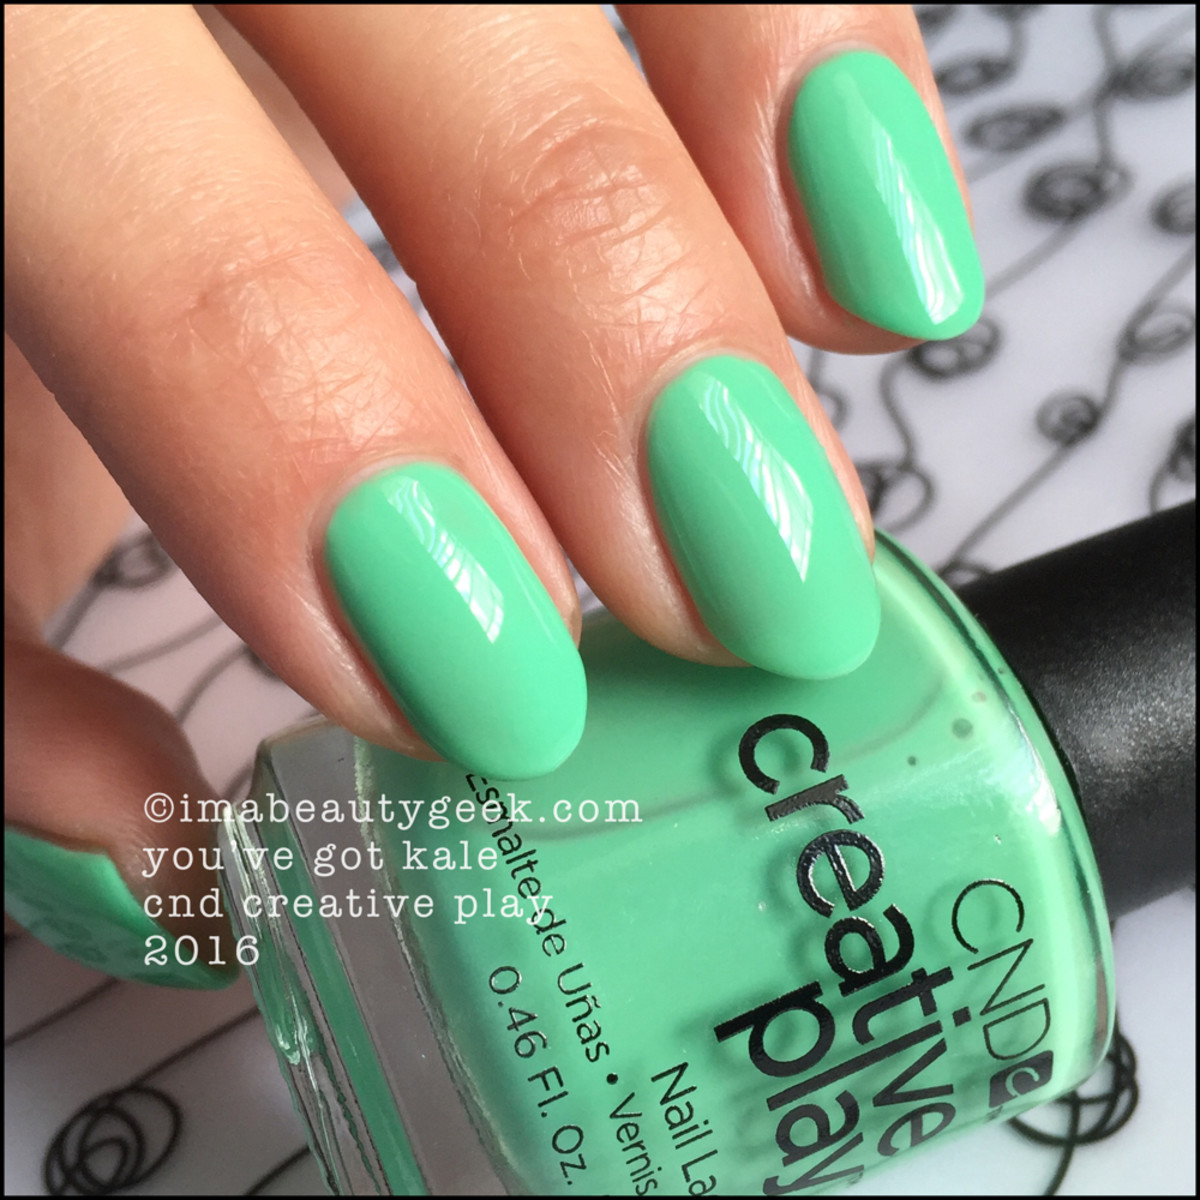 CND Creative Play Youve Got Kale_CND Creative Play Nail Polish Swatches